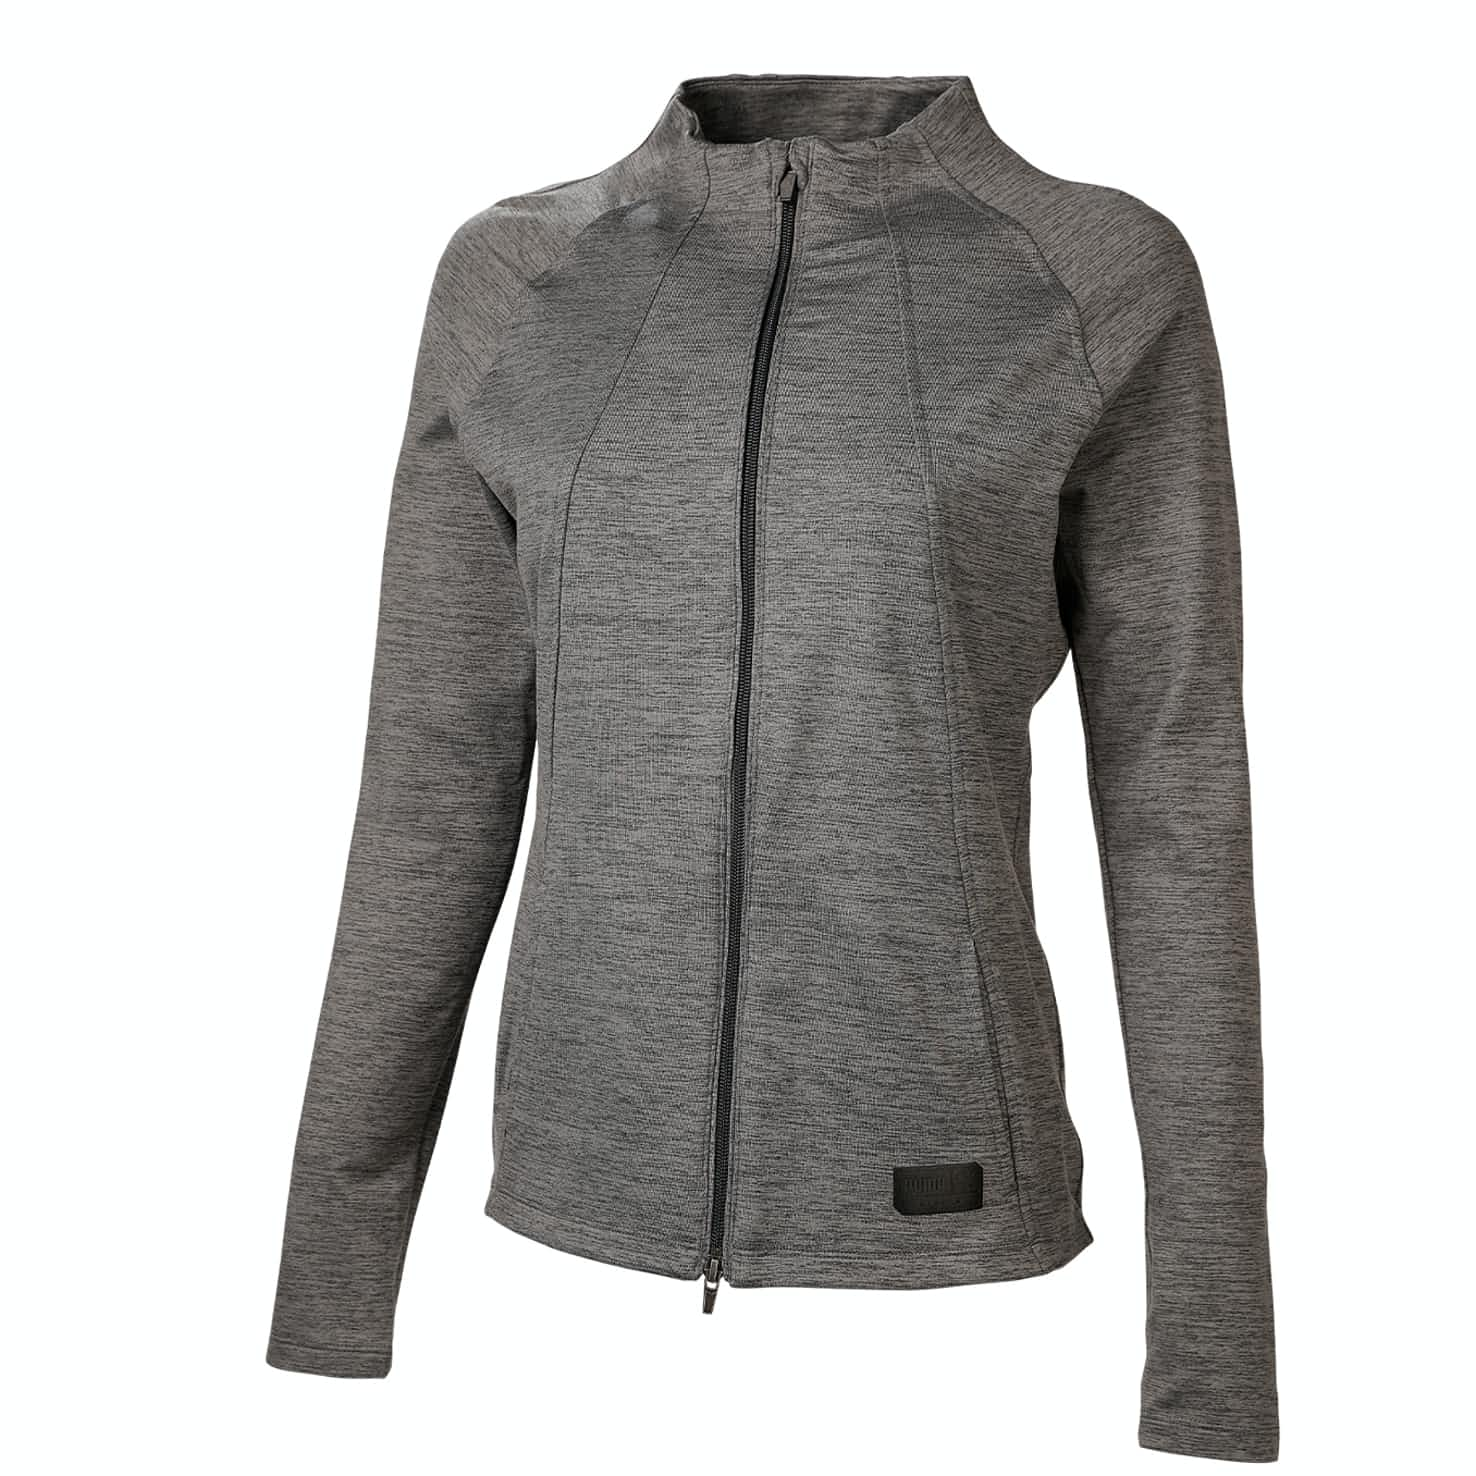 Womens Warm Up Jacket Black Heather - SS20